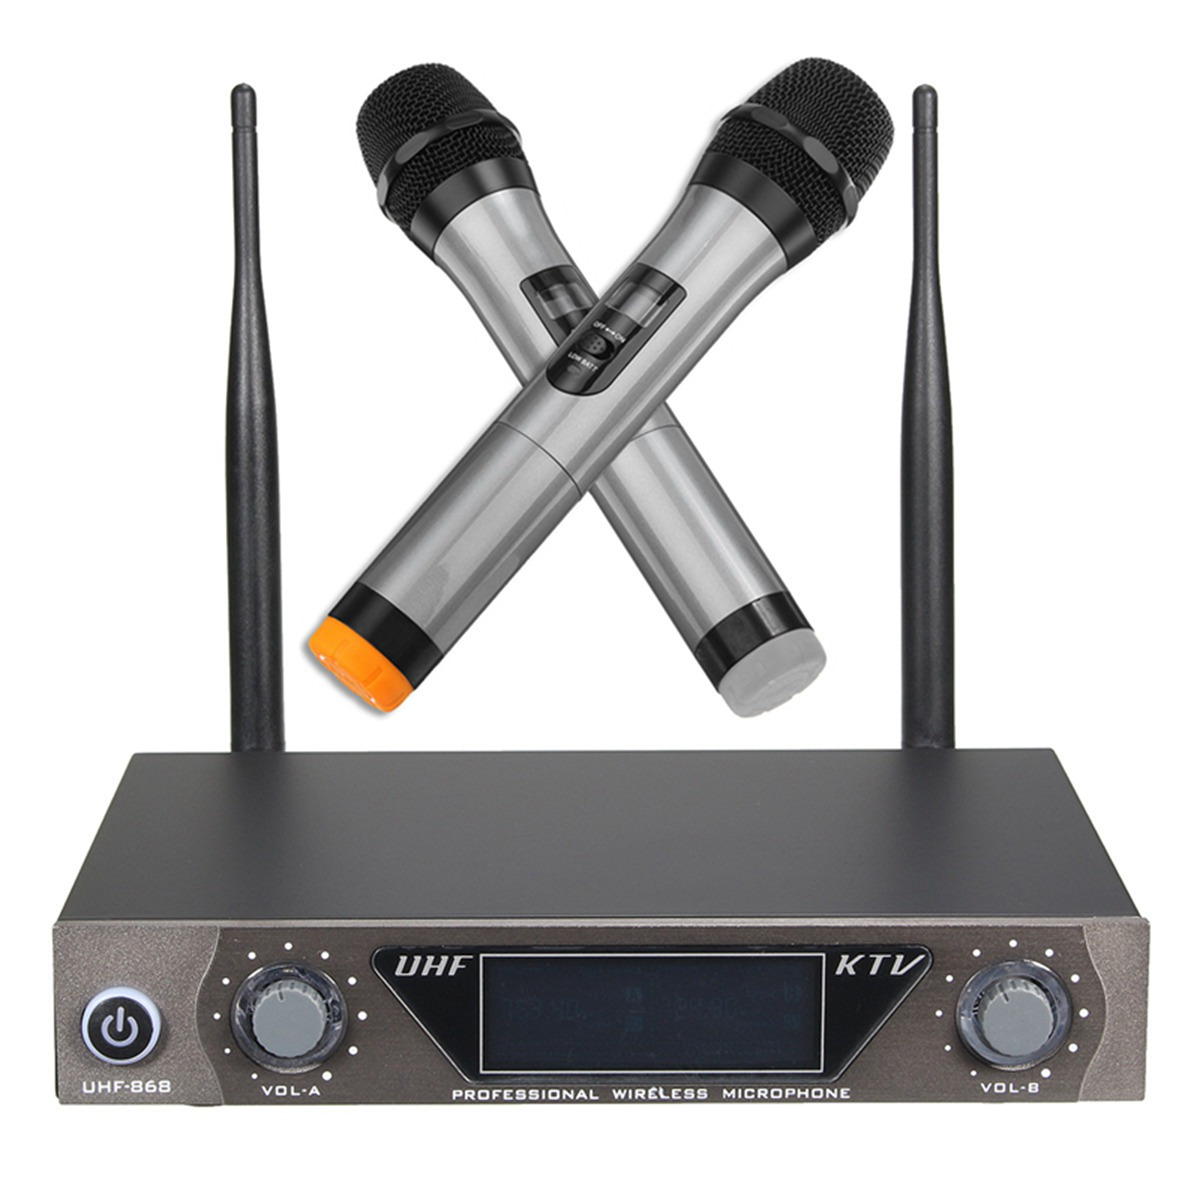 Professional UHF Wireless Microphone System With 2 Handheld Mic Dual Channel UHF Transmitter Microphone Systerm For Karaoke high end uhf 8x50 channel goose neck desk wireless conference microphones system for meeting room